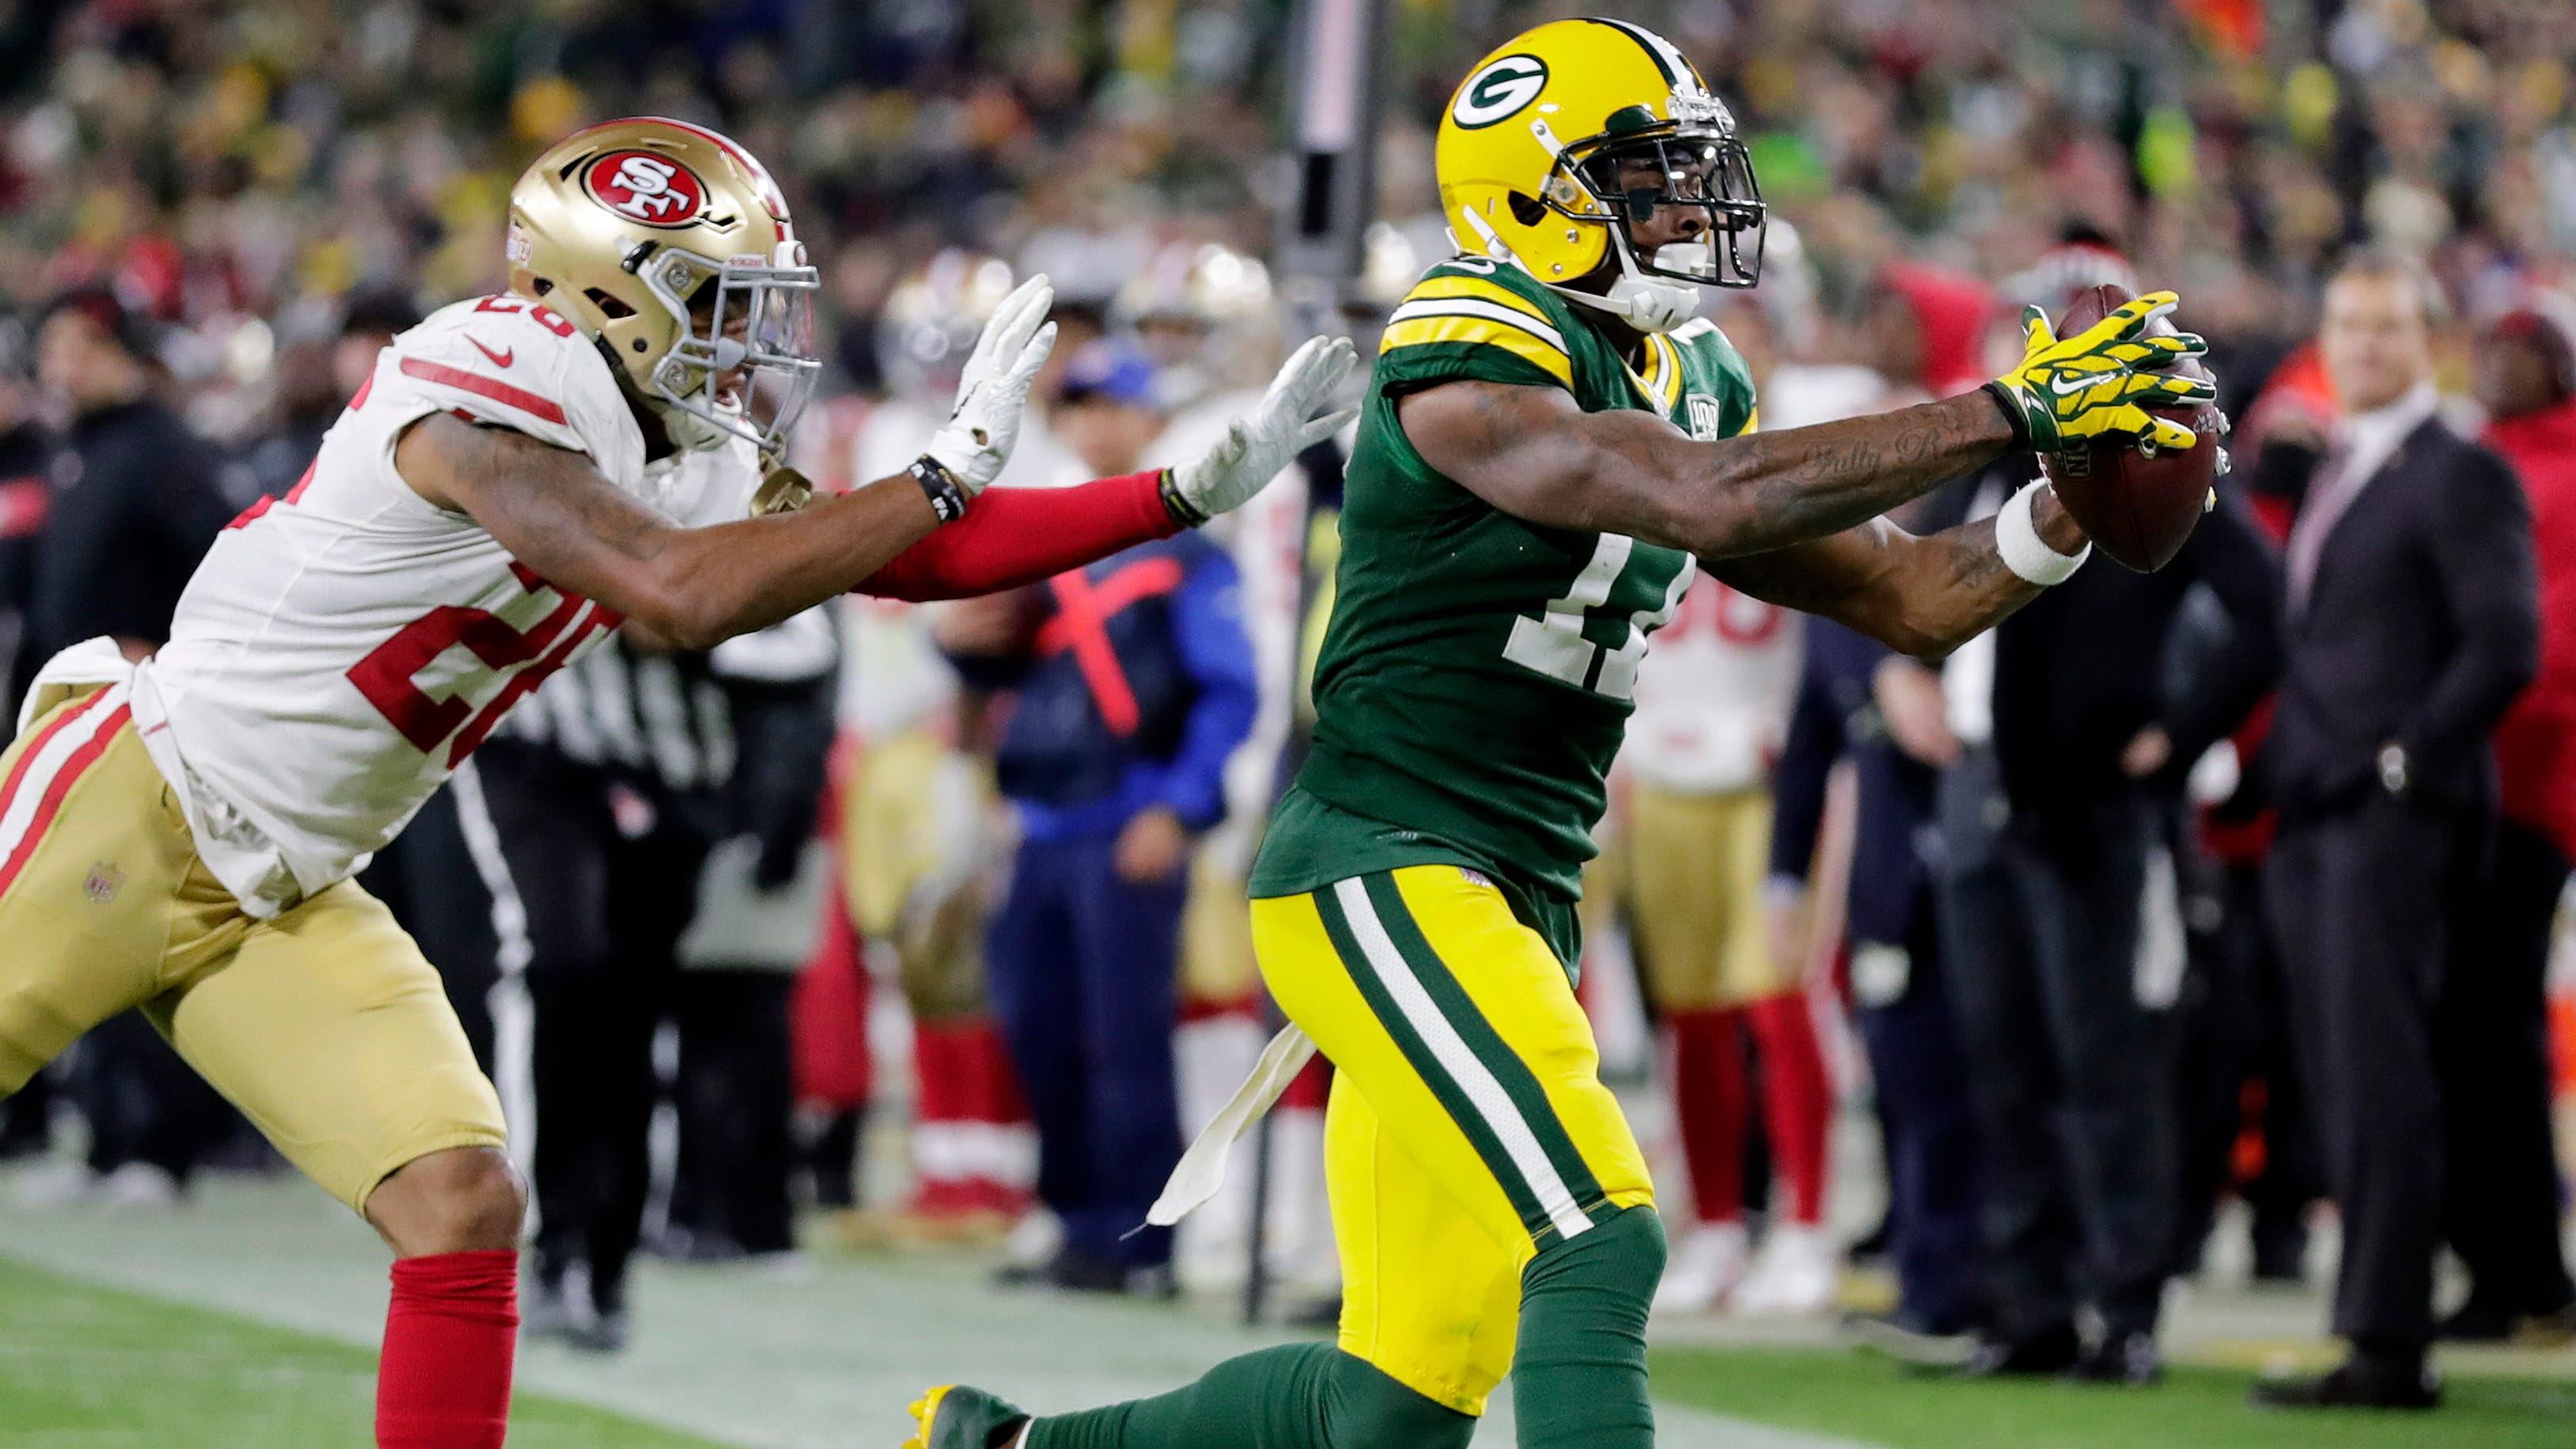 Green Bay Packers living dangerously by relying on rallies